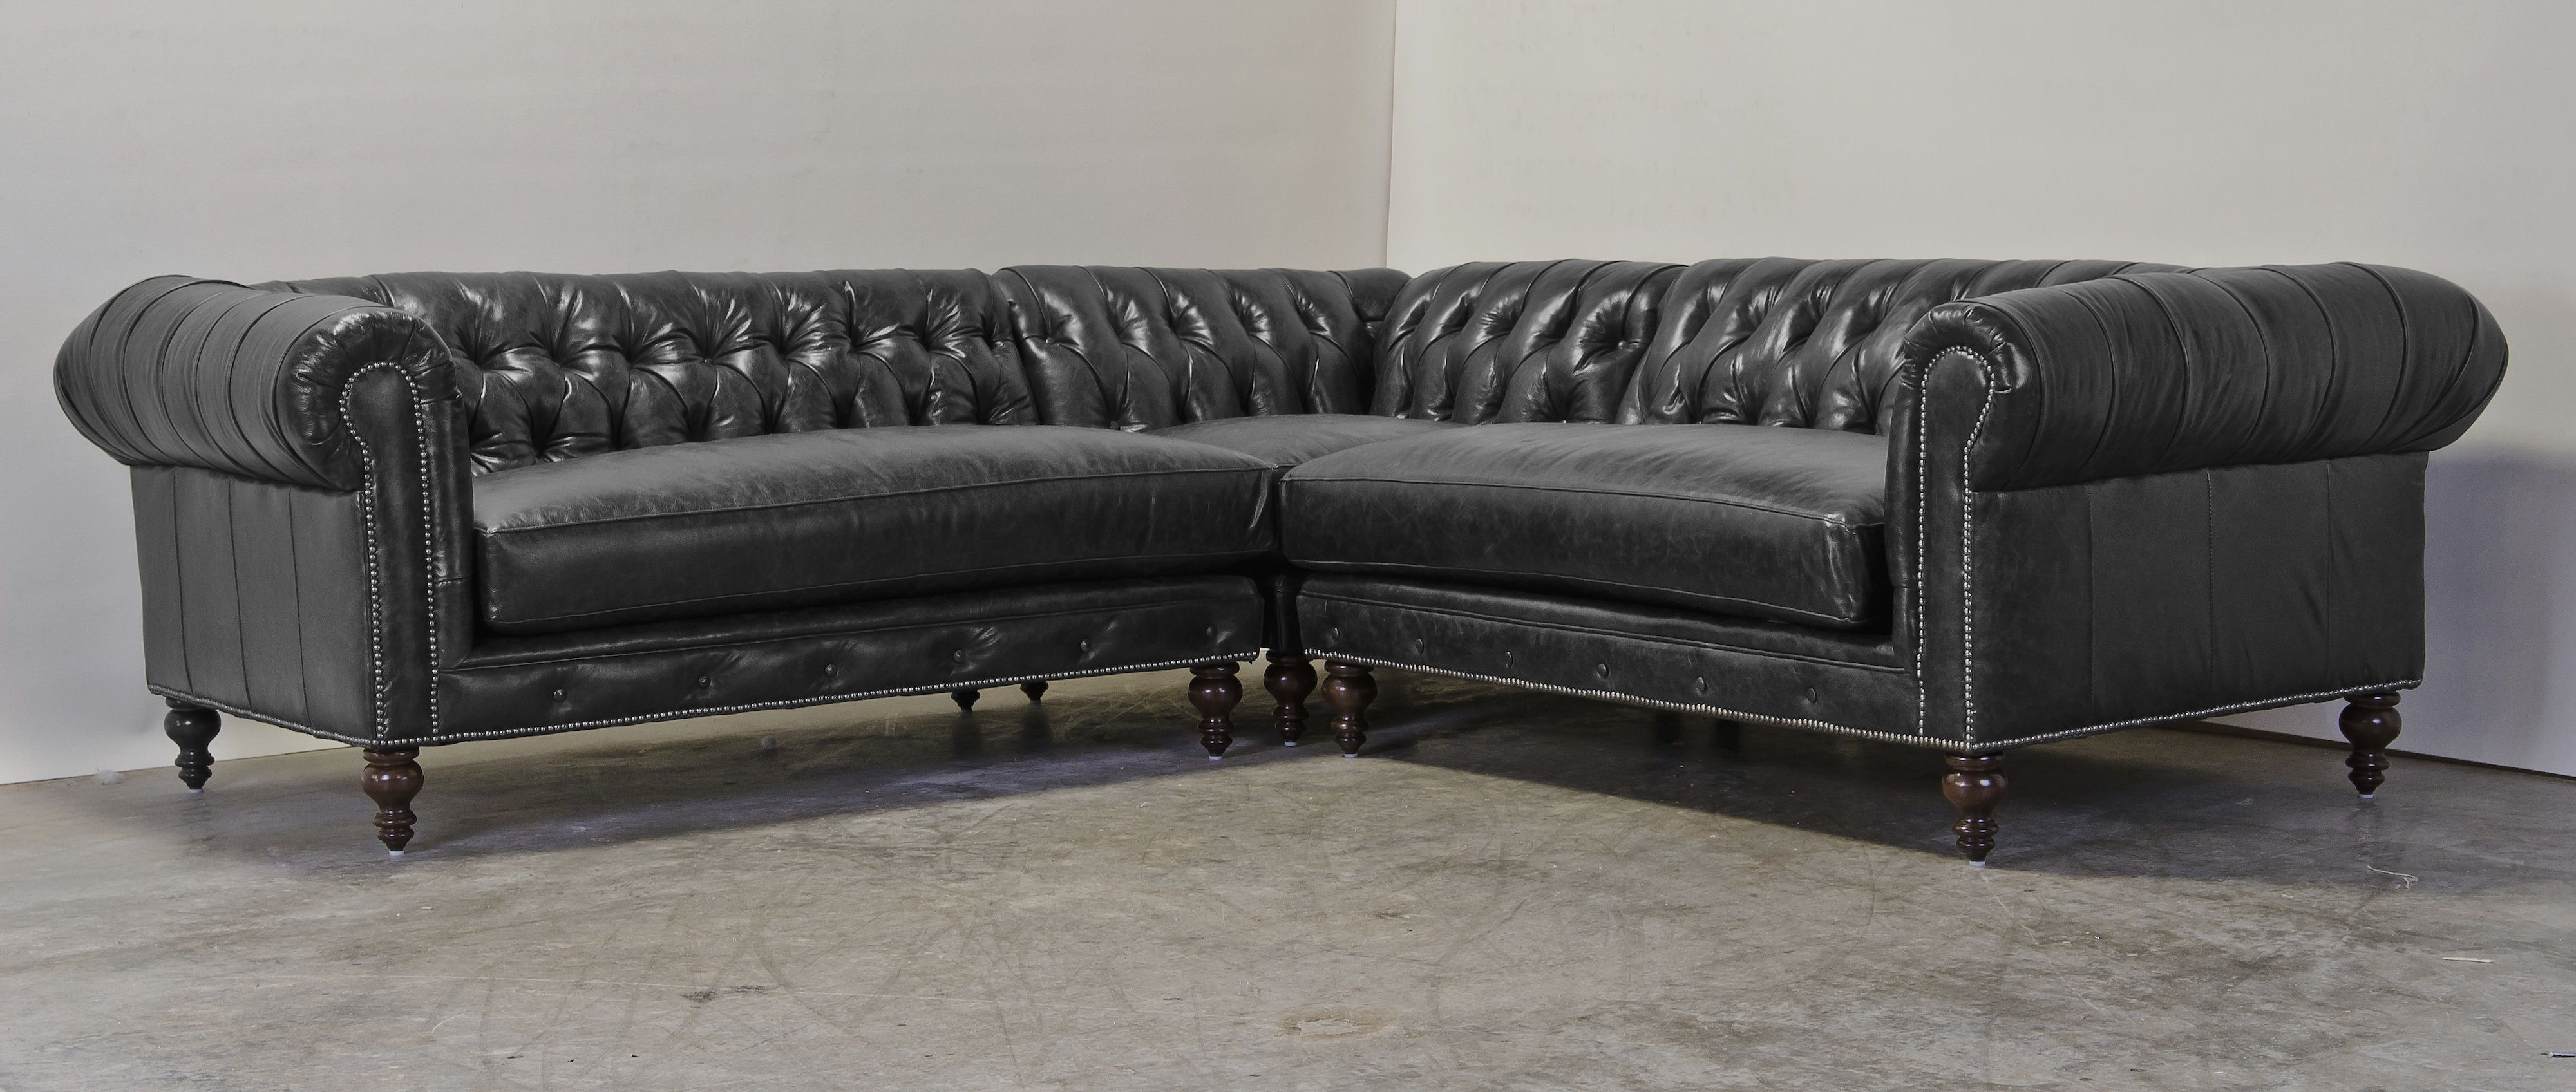 Chesterfield Sectional In Krystal Night Grey Leather Corner Sofa Leather Corner Sofa Leather Sectional Sofas